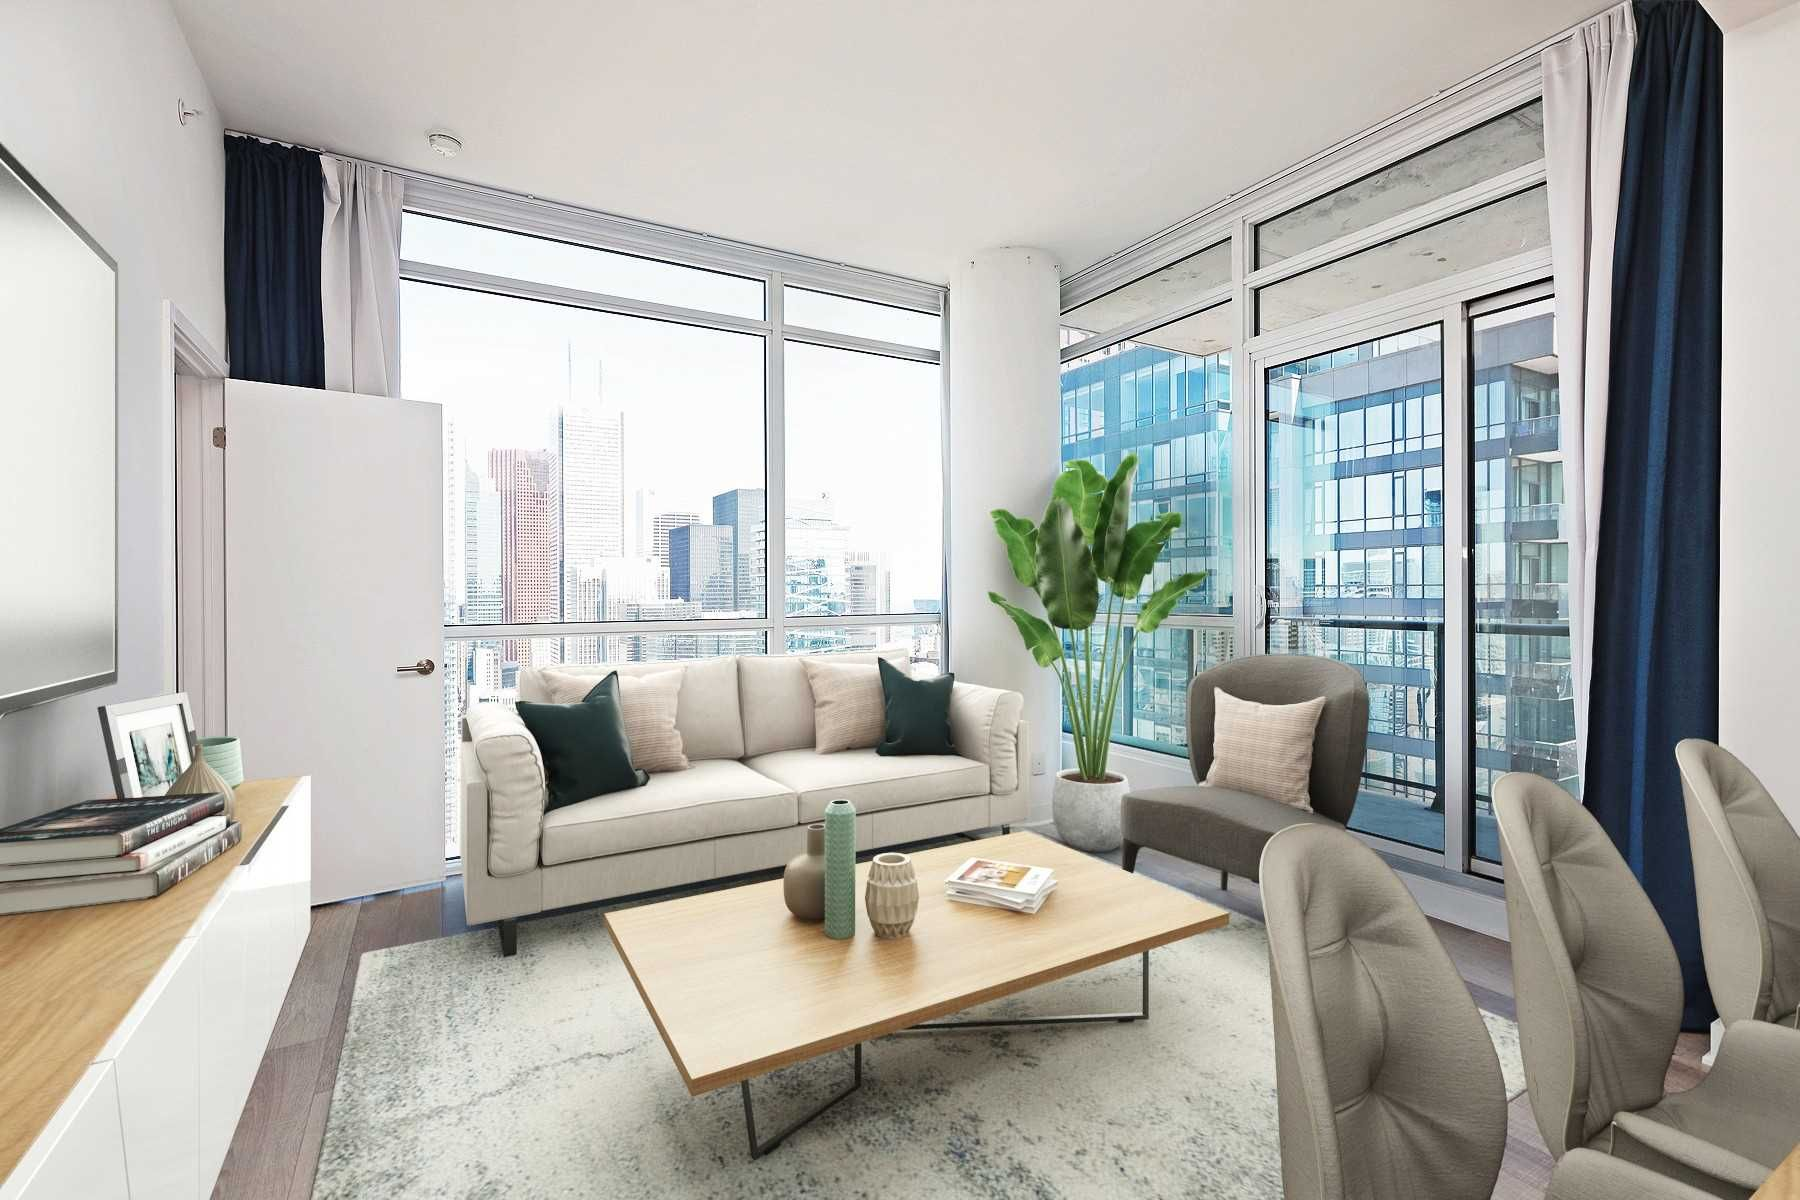 290 Adelaide St W, unit 4010 for rent in Toronto - image #2